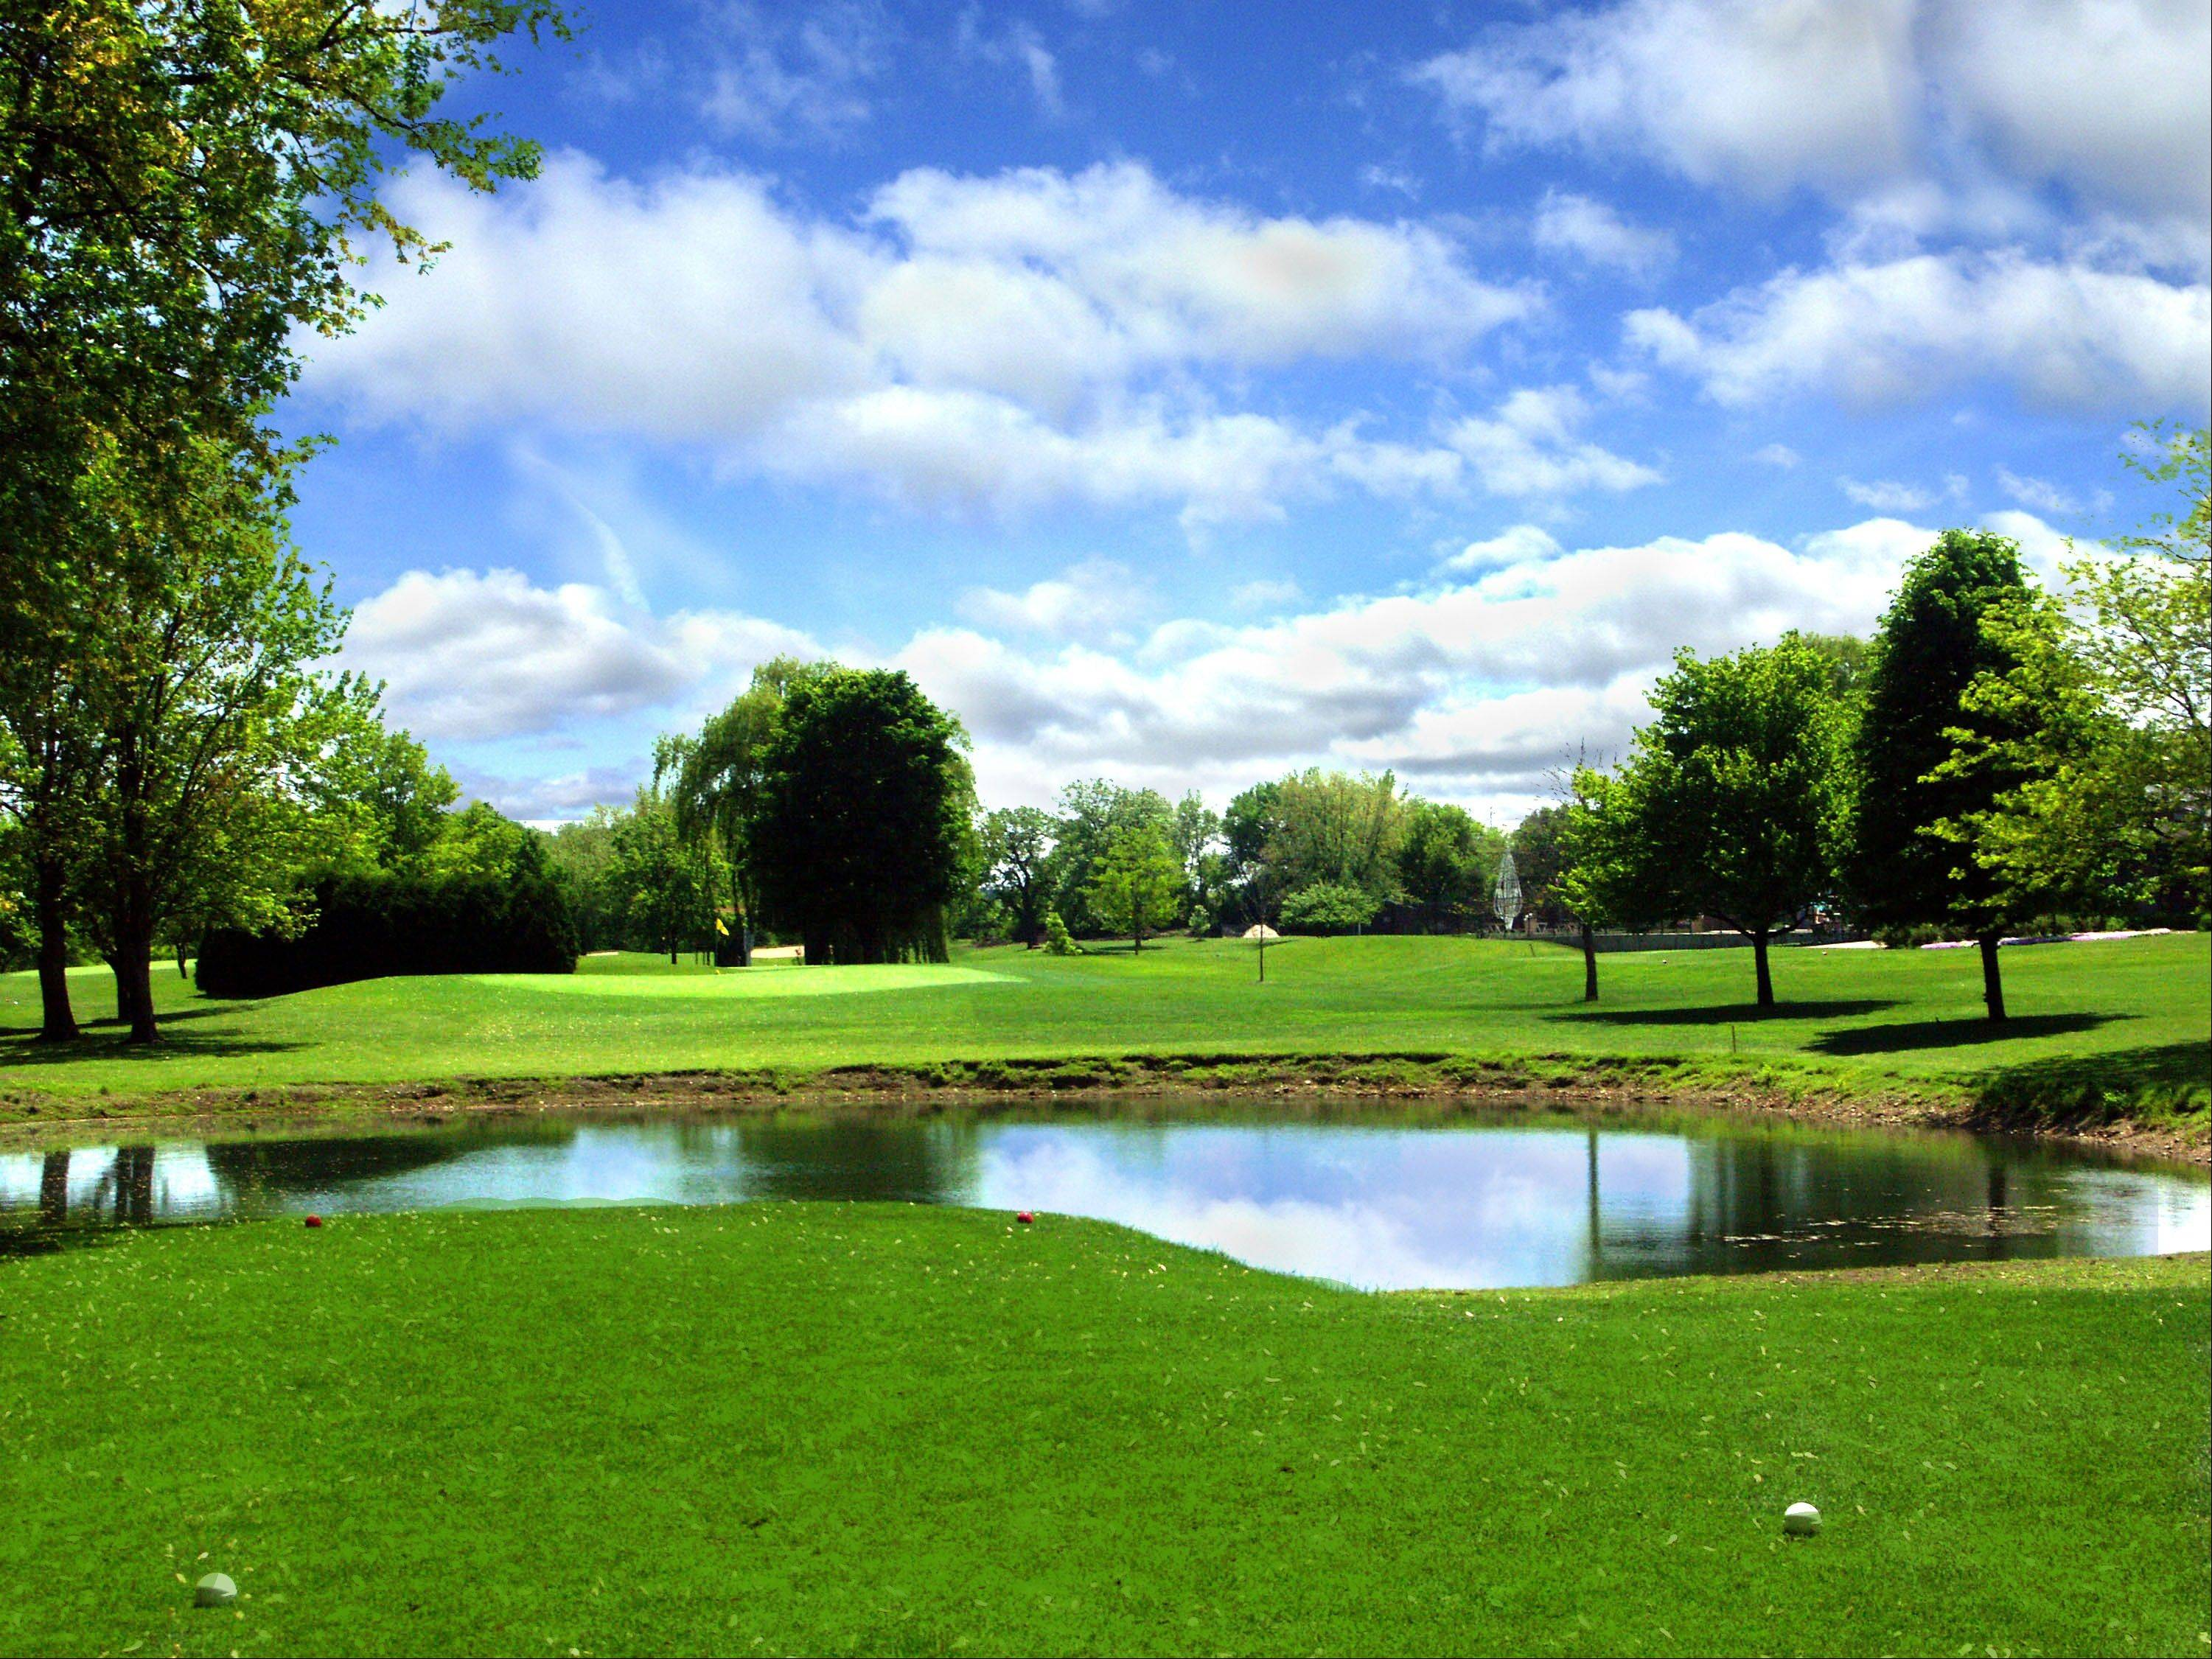 Three tournaments will be held at the Libertyville Golf Course.